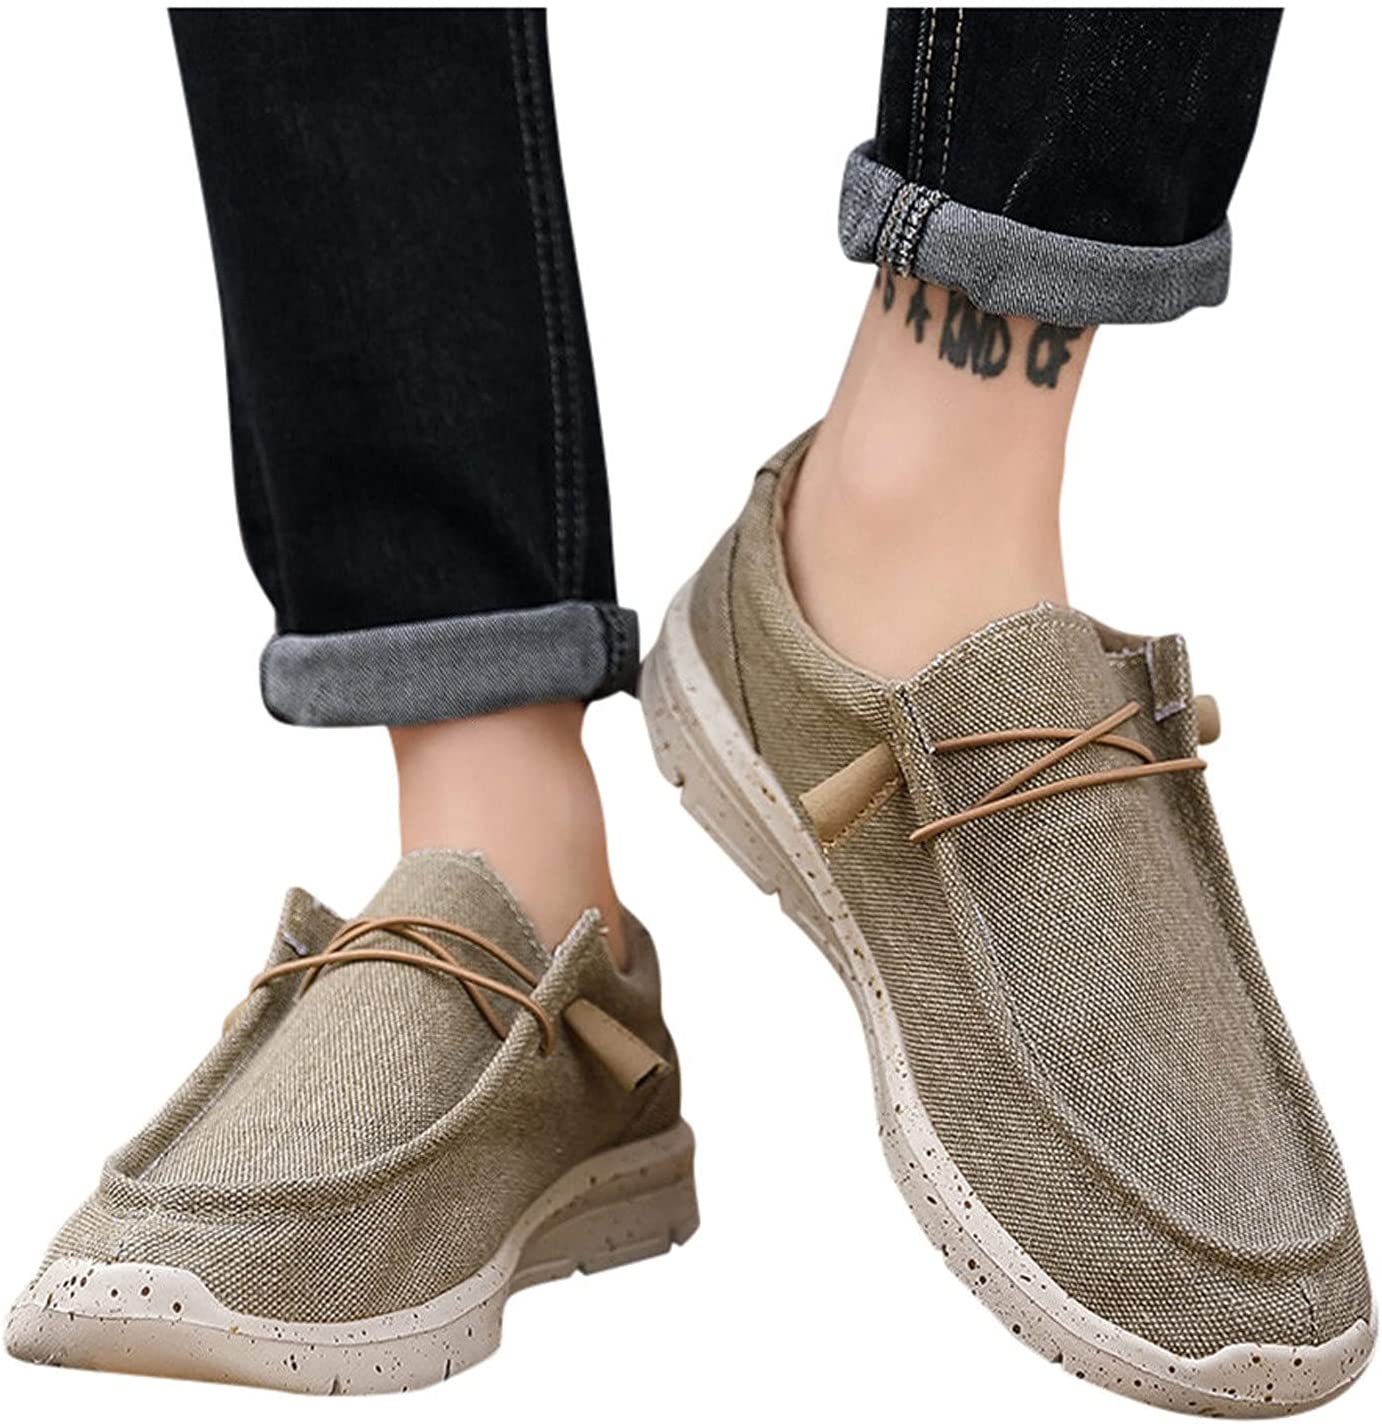 Men Outdoor Flats Loafers Breathable Comfortable Lightweight Sneakers Slip On Shoe Summer Lace-Up Sneaker